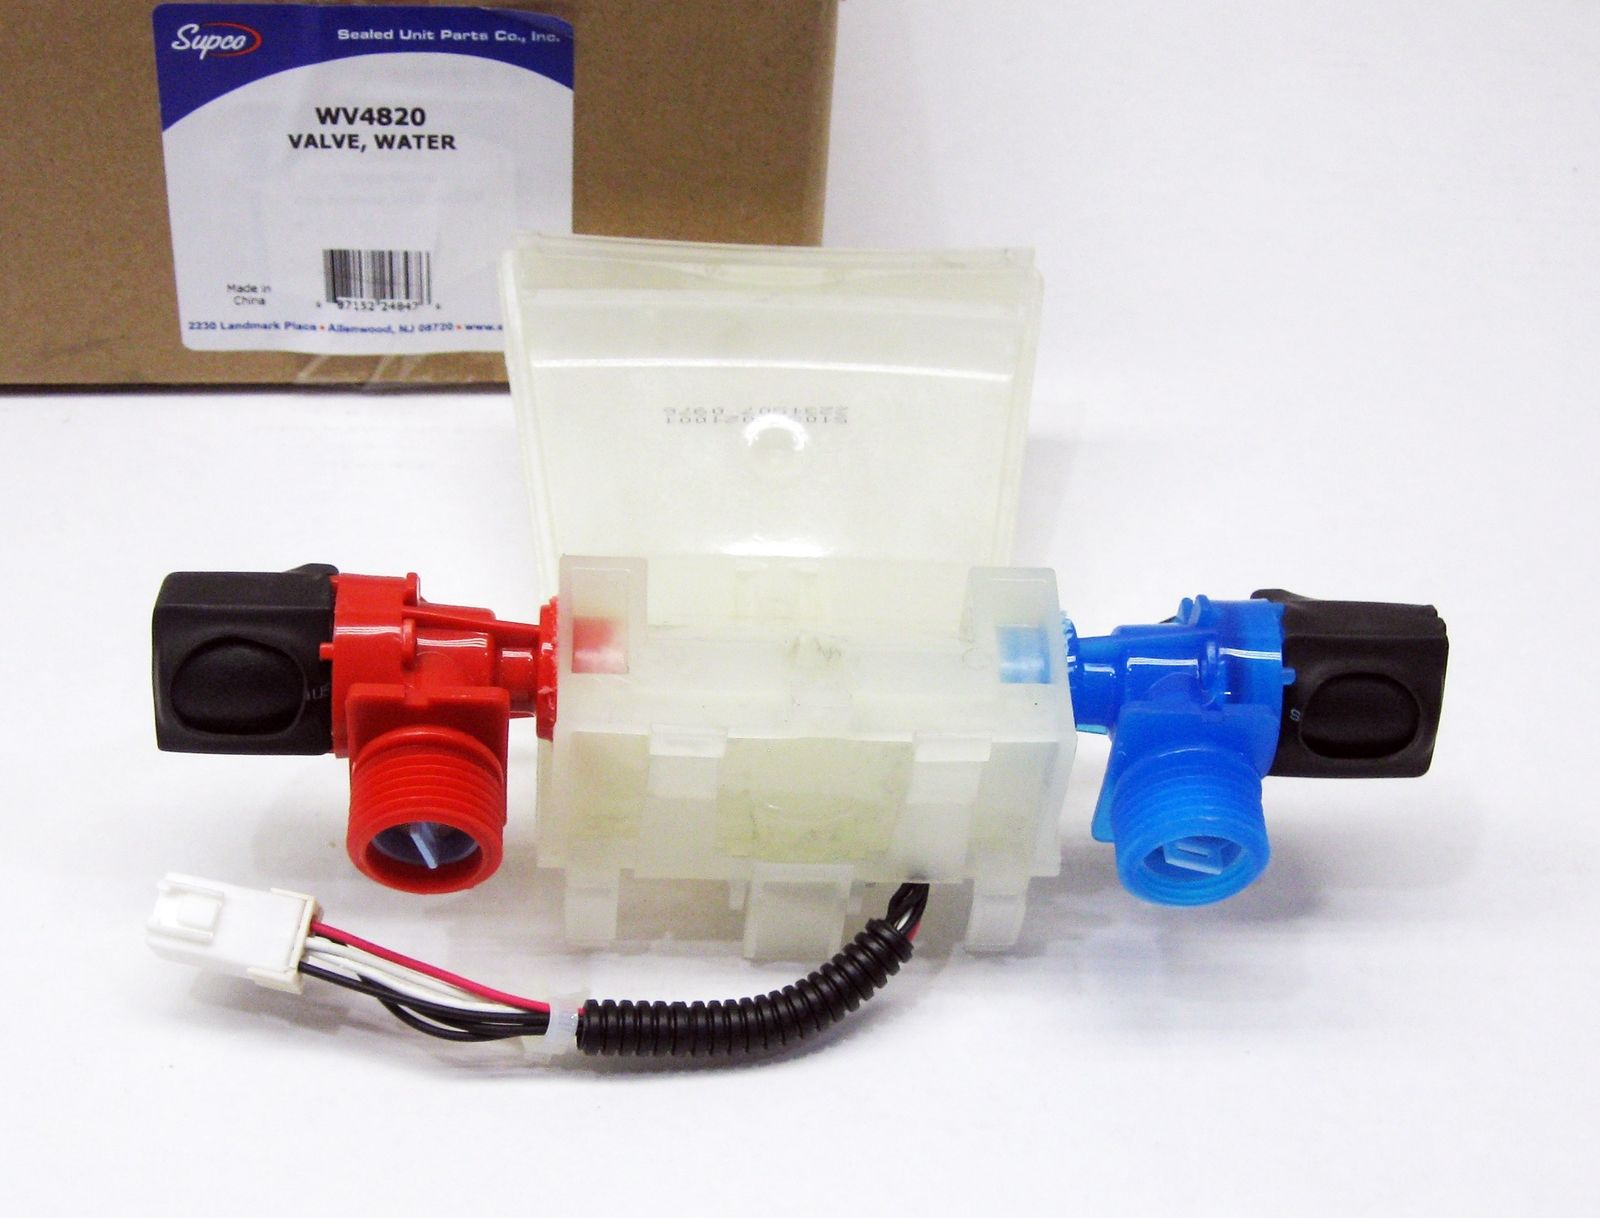 NEW W10144820 Washer Water Valve w//Thermistor for Whirlpool Kenmore